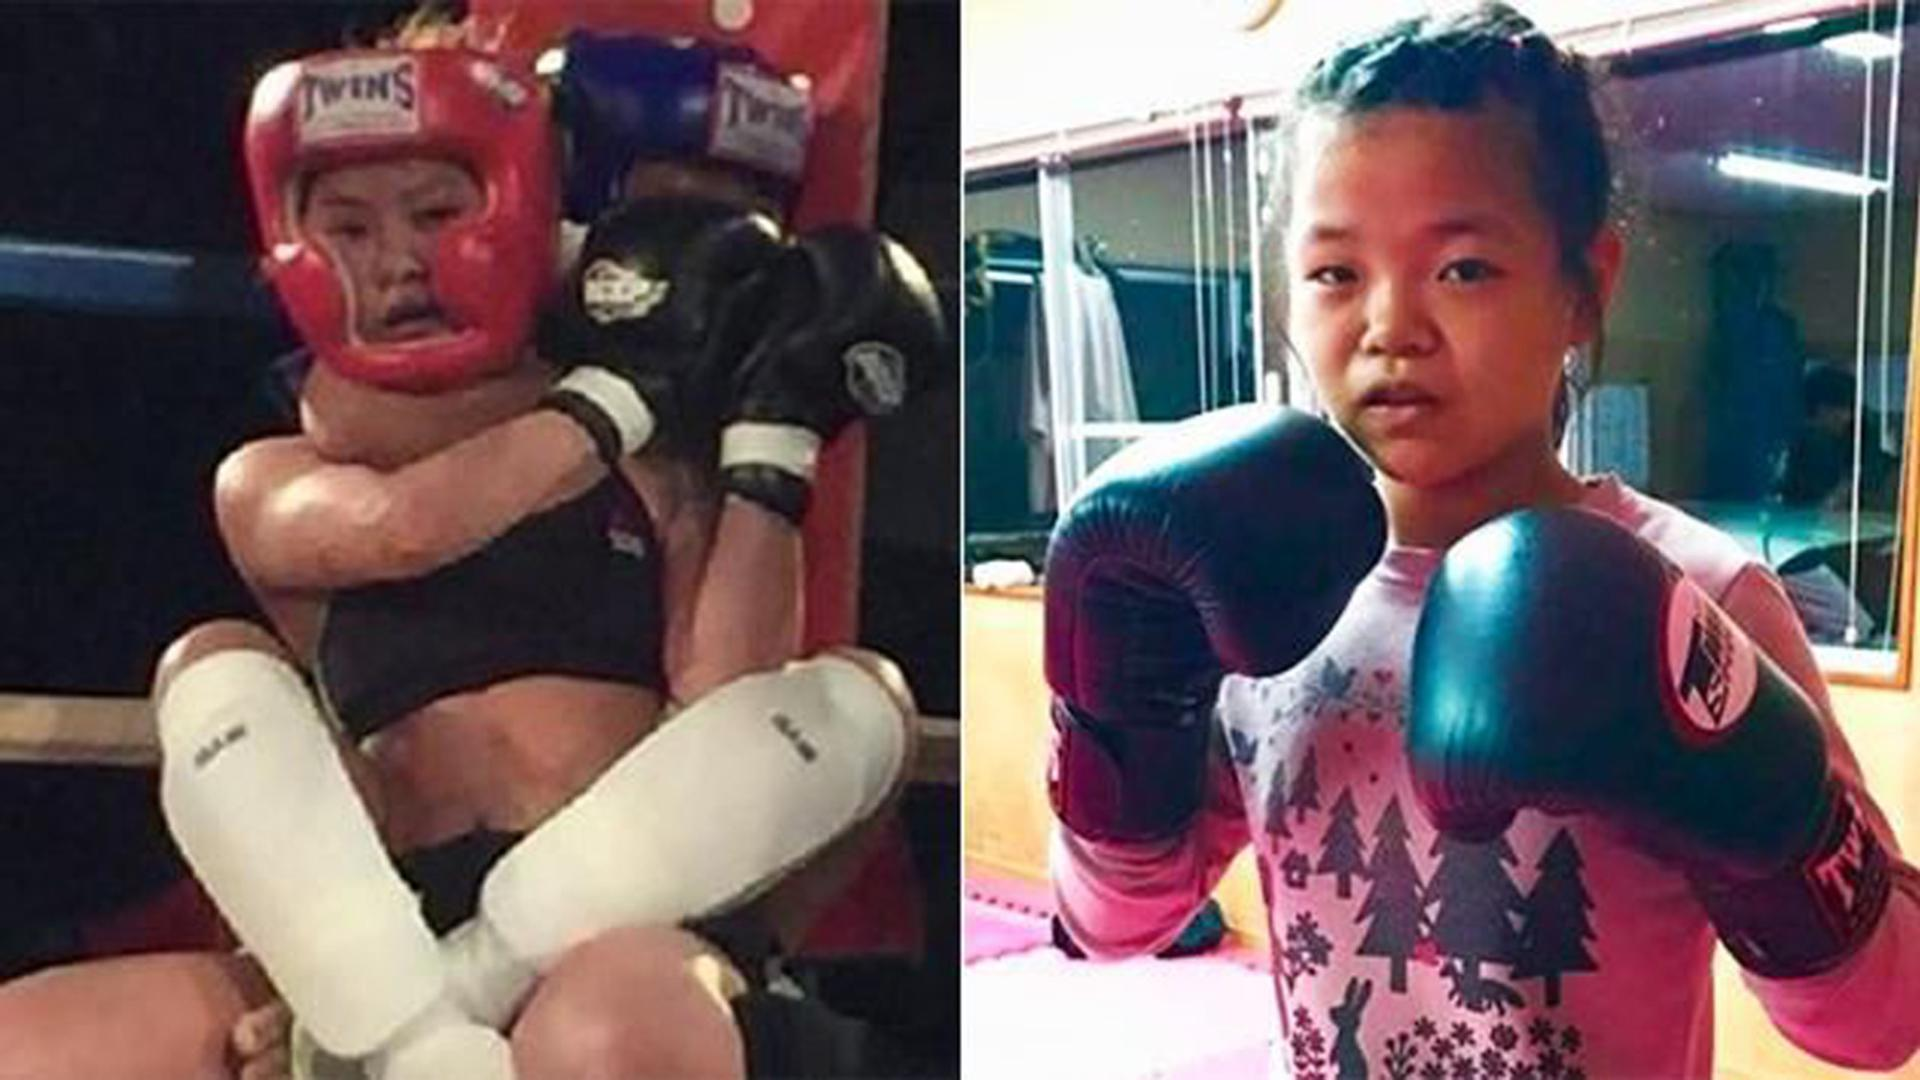 12-Year-Old Kid CHOKES OUT 24-Year-Old Opponent in MMA Debut